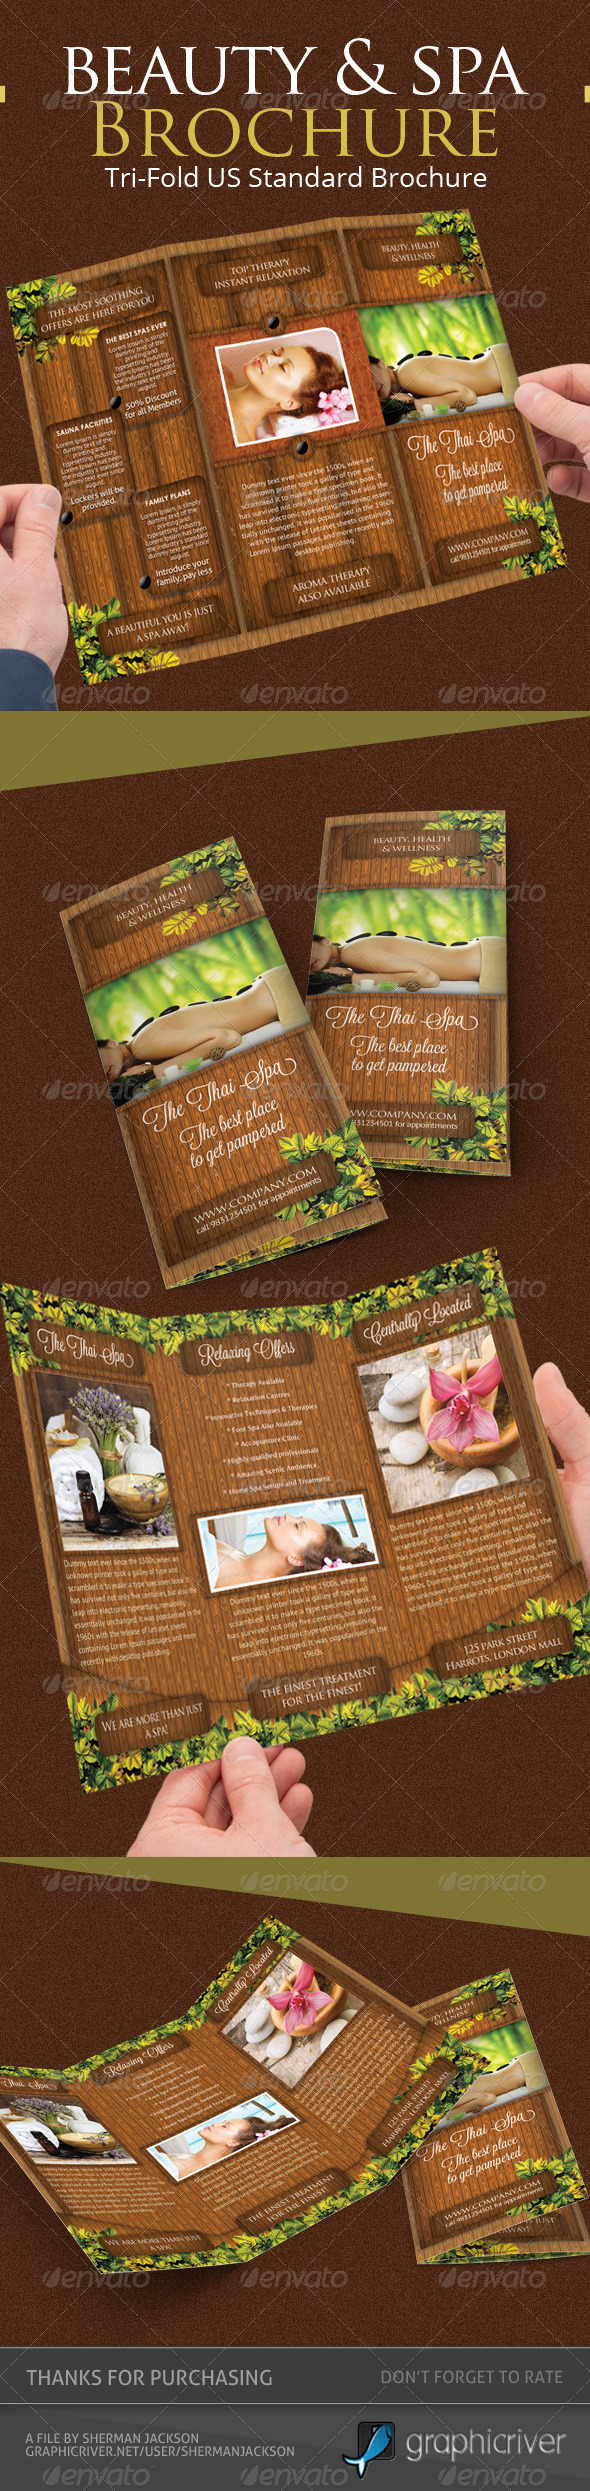 Beauty & Spa Trifold Brochure PSD Template - Brochures Print Templates